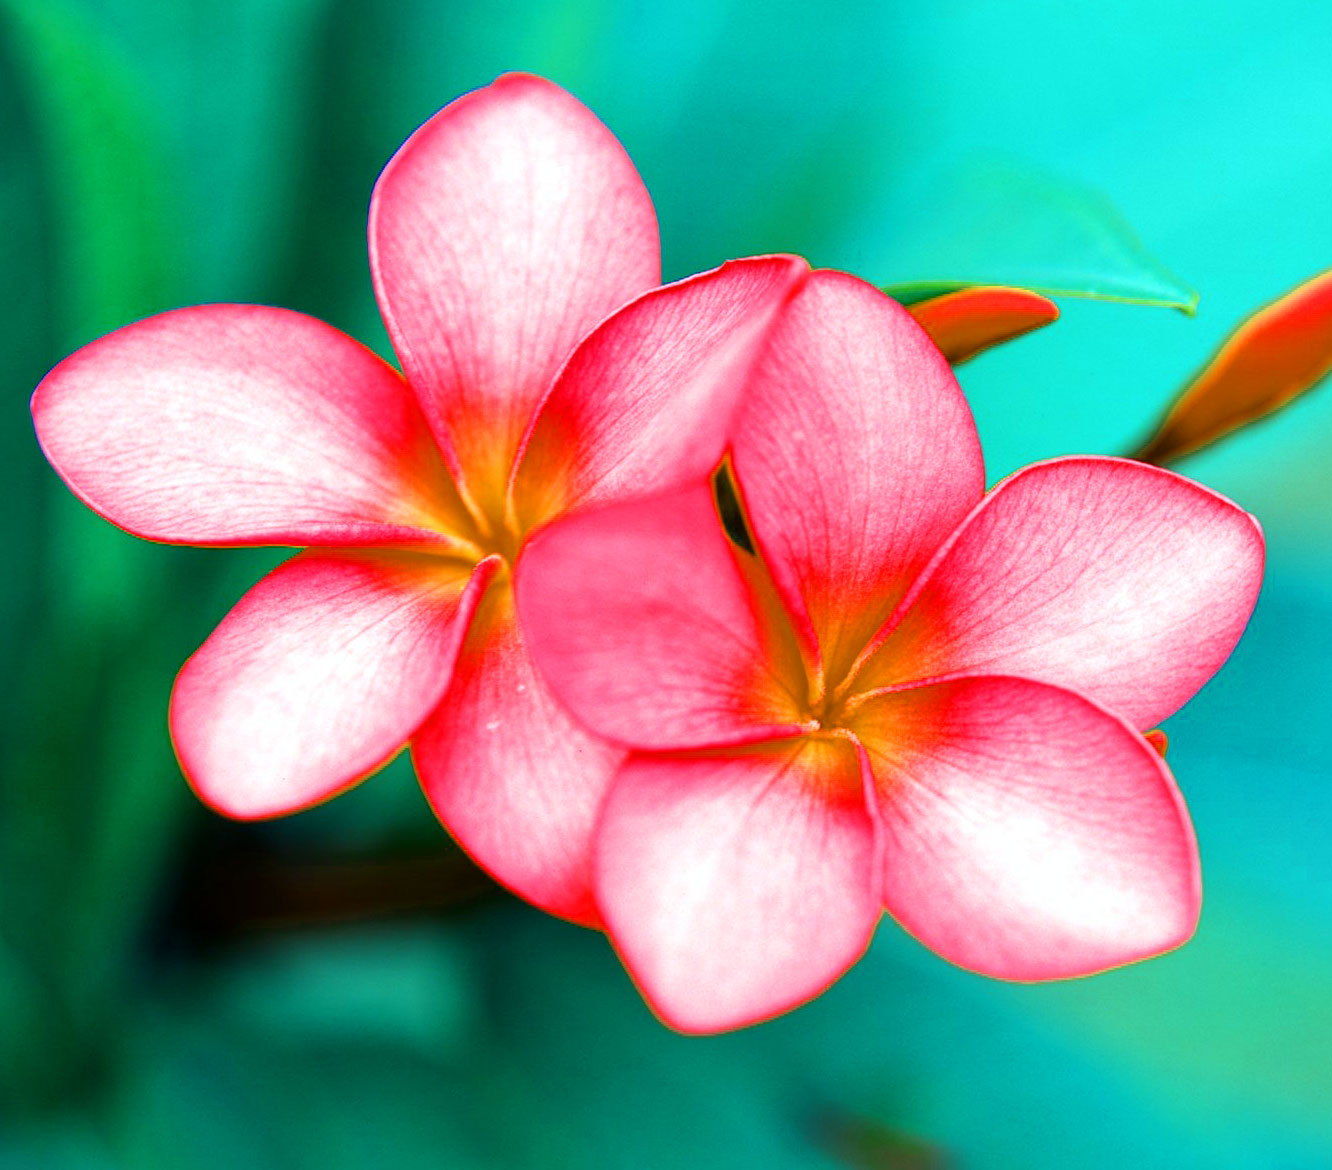 Free Beautiful Flower Images for Whatsapp DP Wallpaper